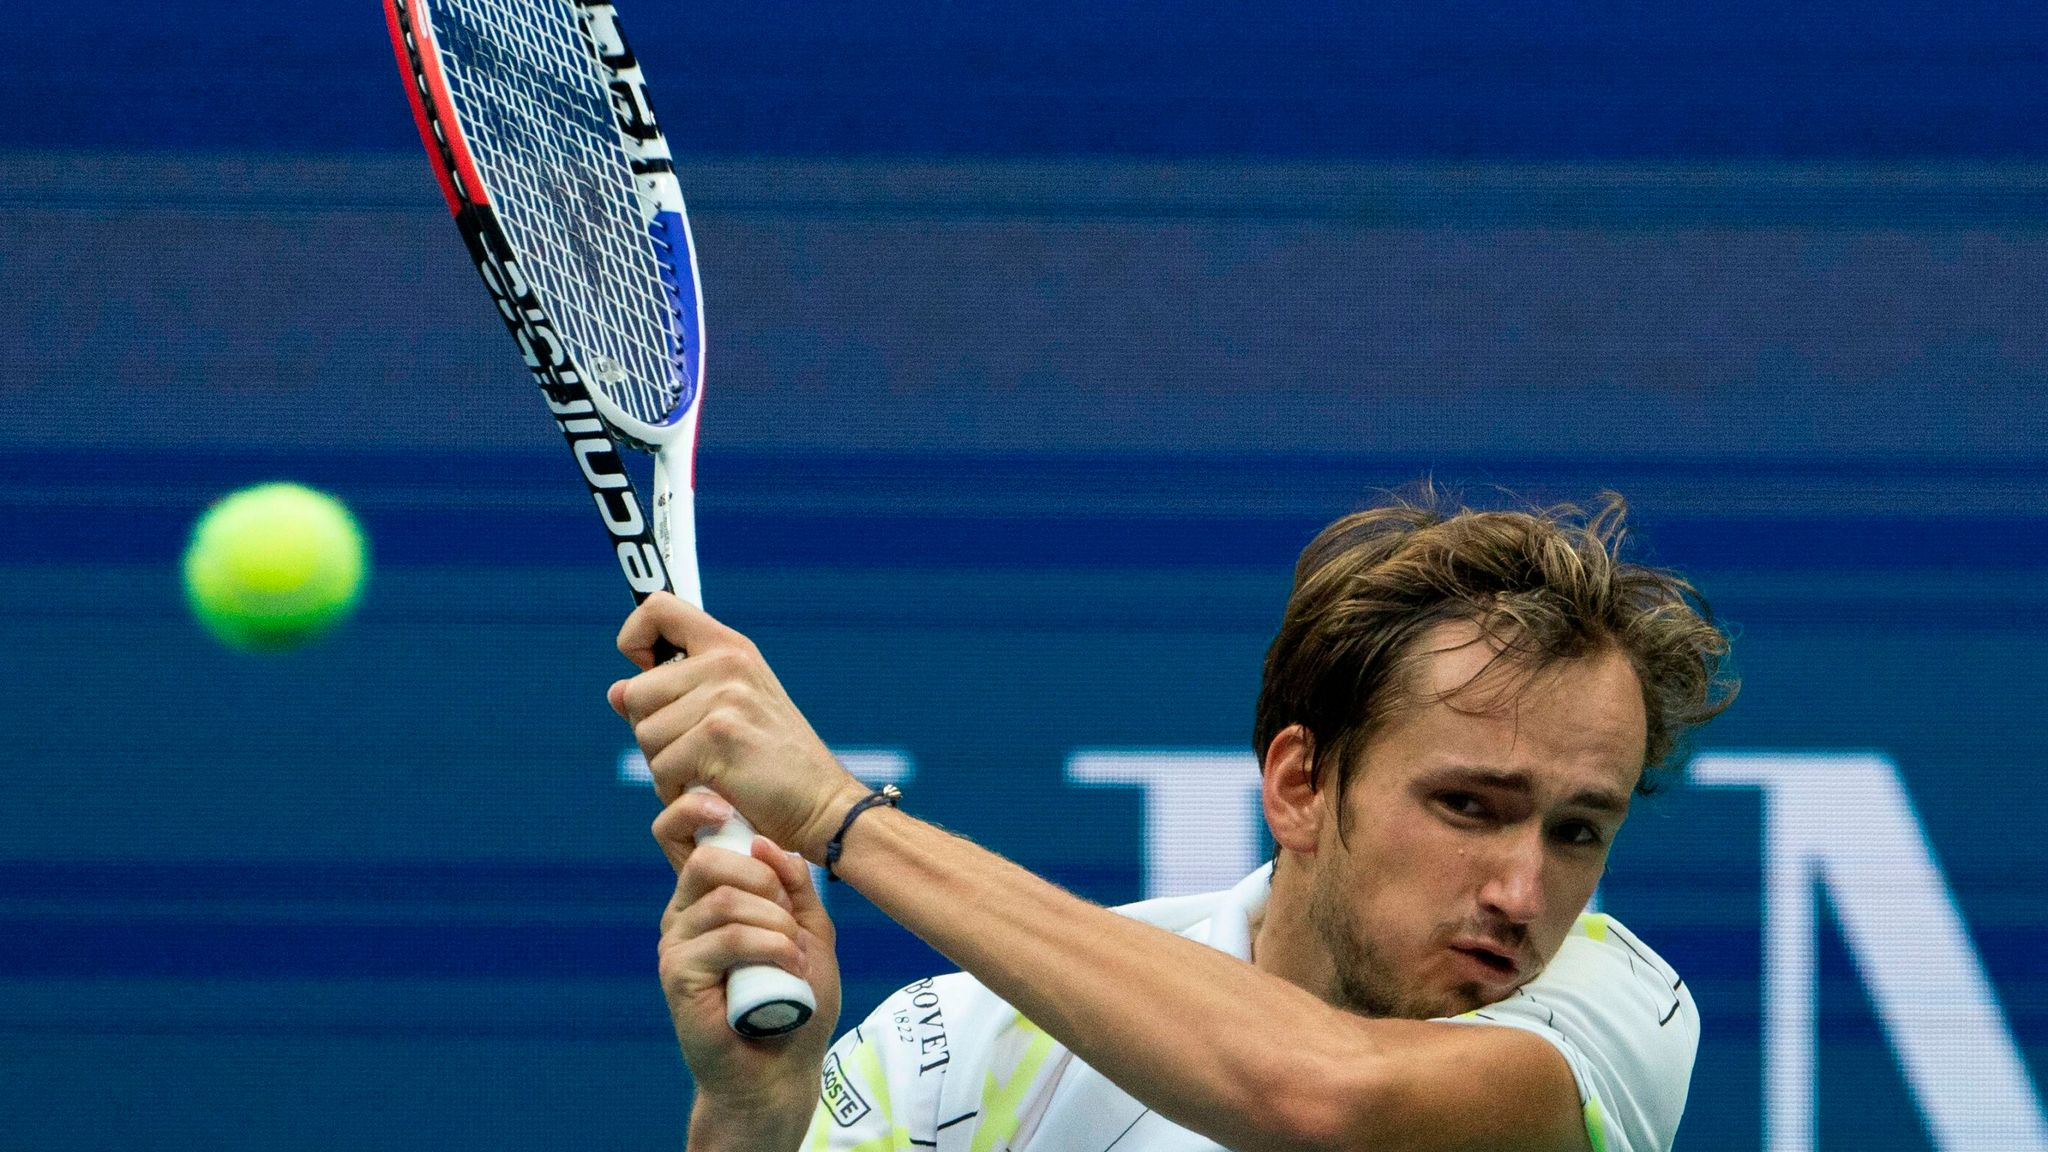 Daniil Medvedev showing importance of developing both body and mind